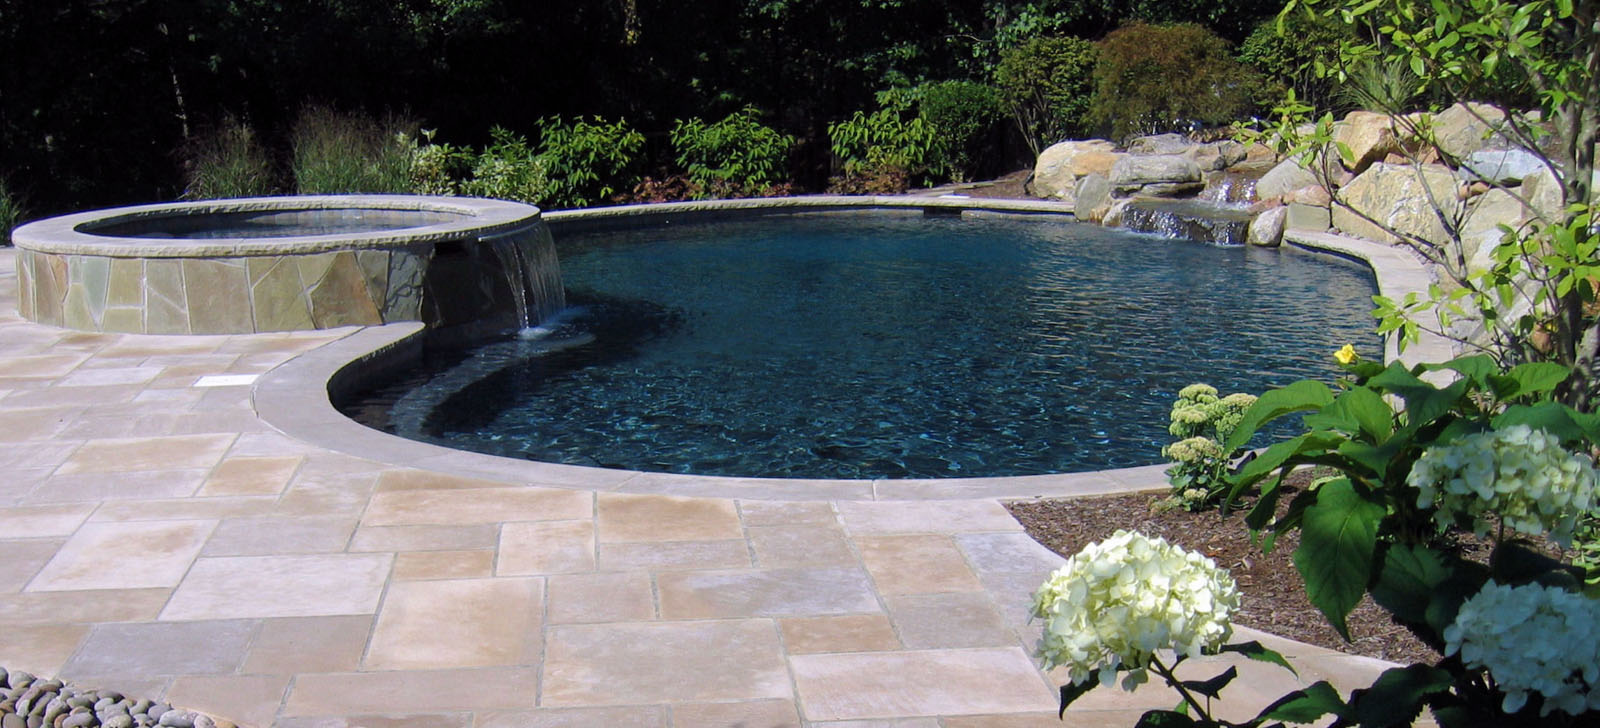 custom pool design with spa and pool waterfall